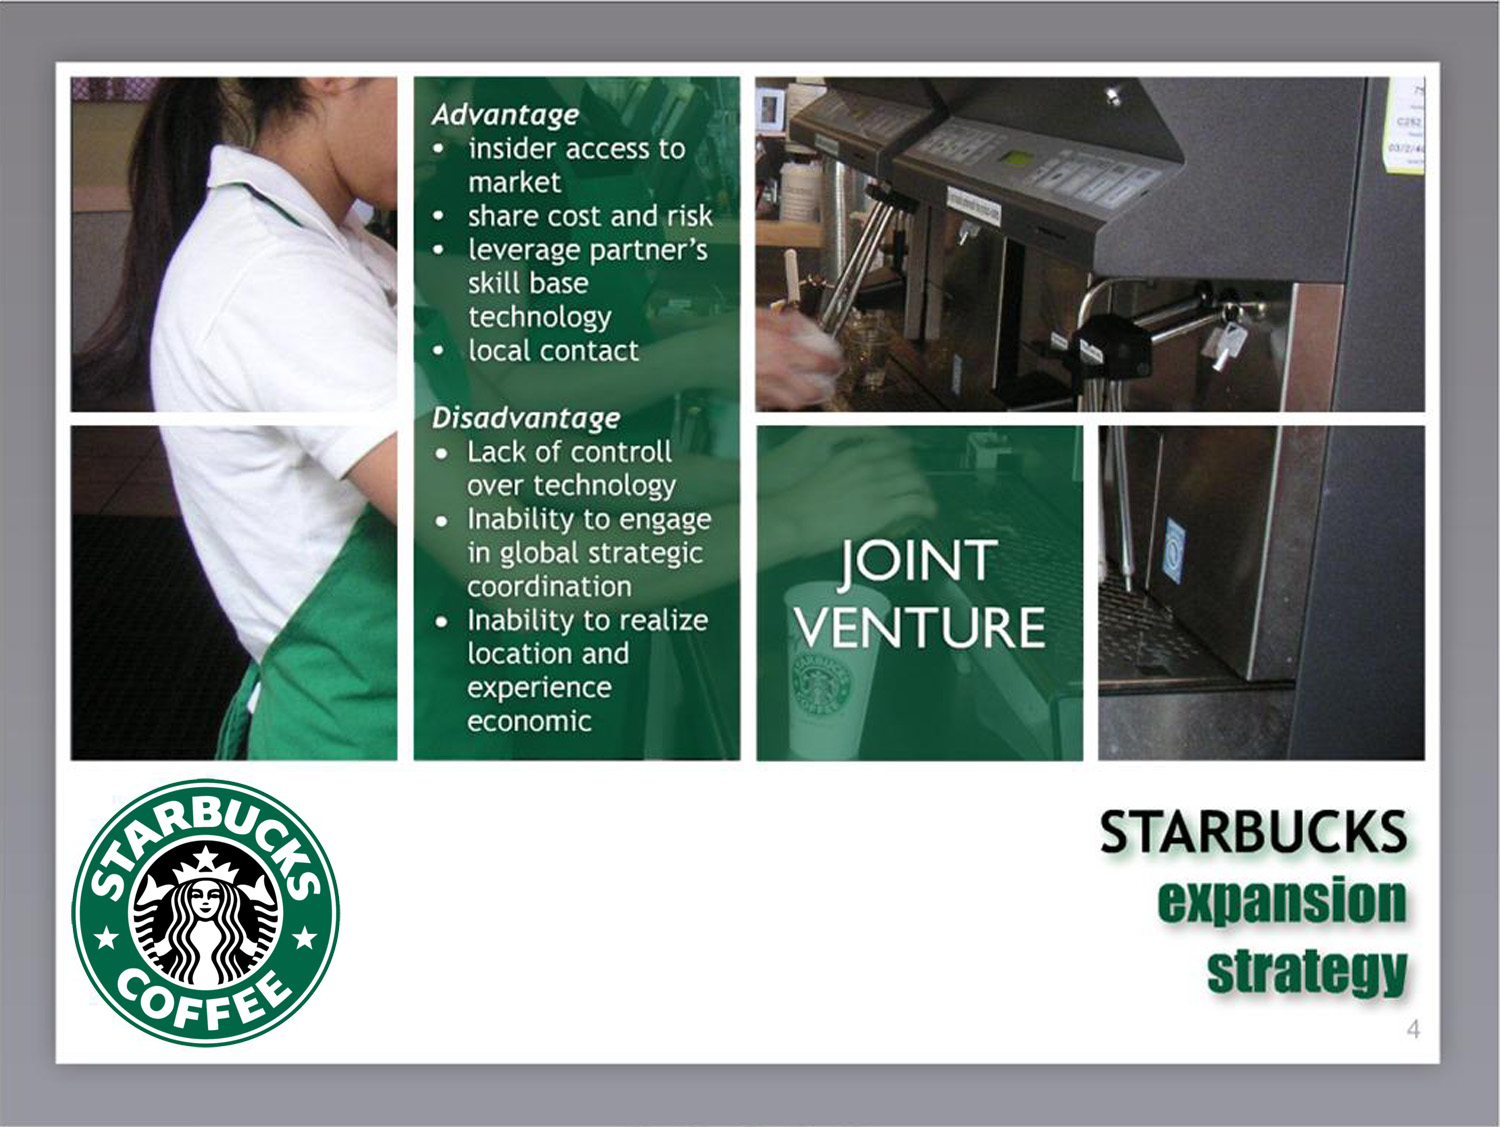 starbucks global expansion strategy Recommendation for starbucks coffee company to be a real global company, starbucks can participate in or support its growth strategy might work just as in us.